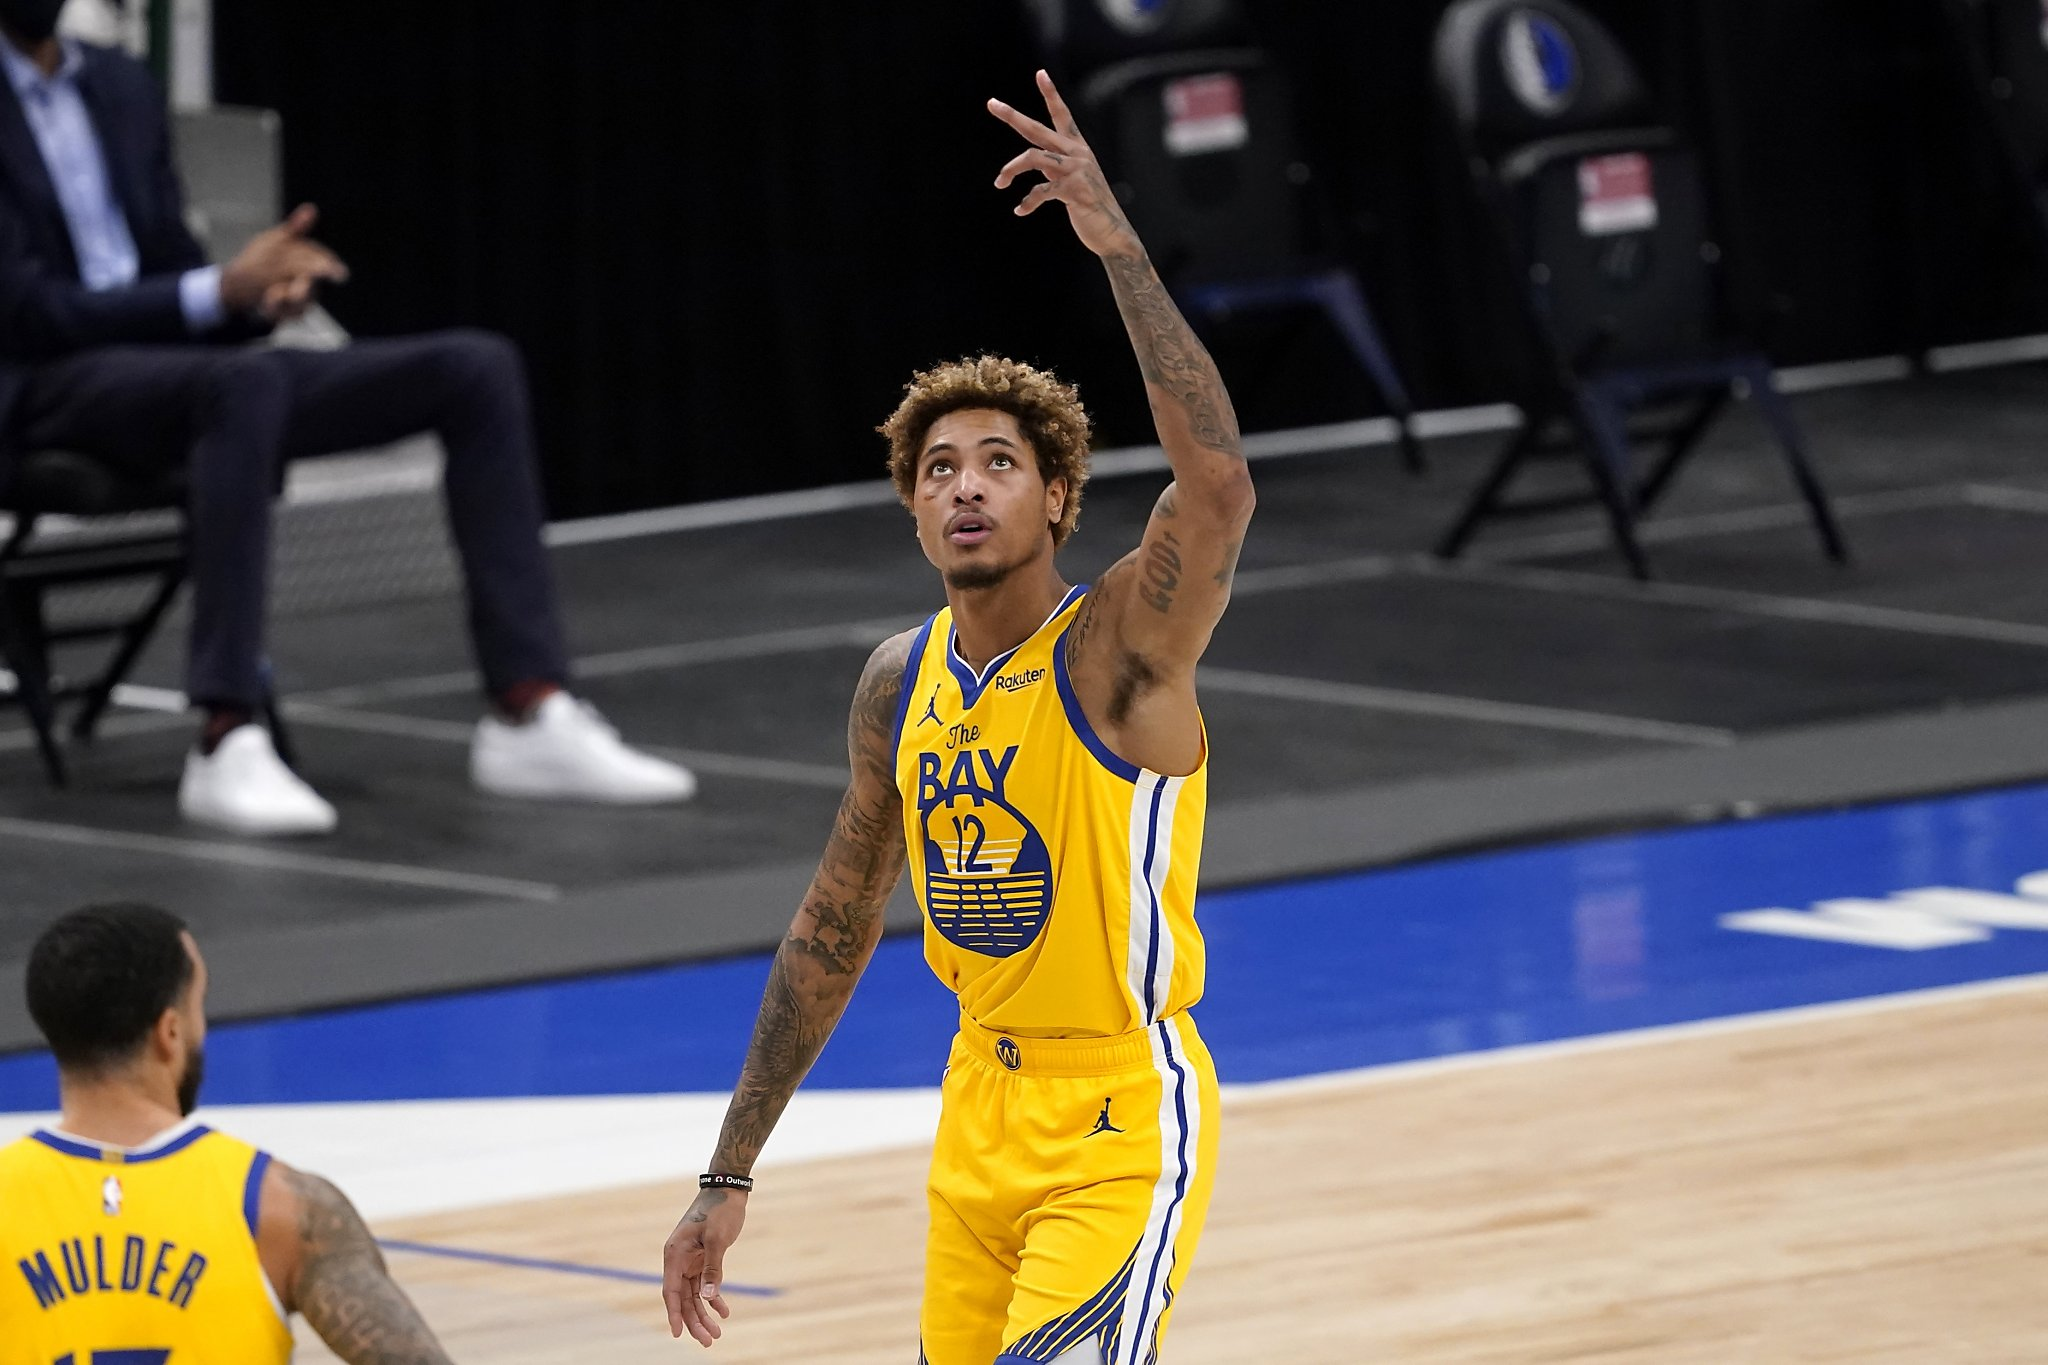 Report: Mutual interest between key Dubs player and Knicks